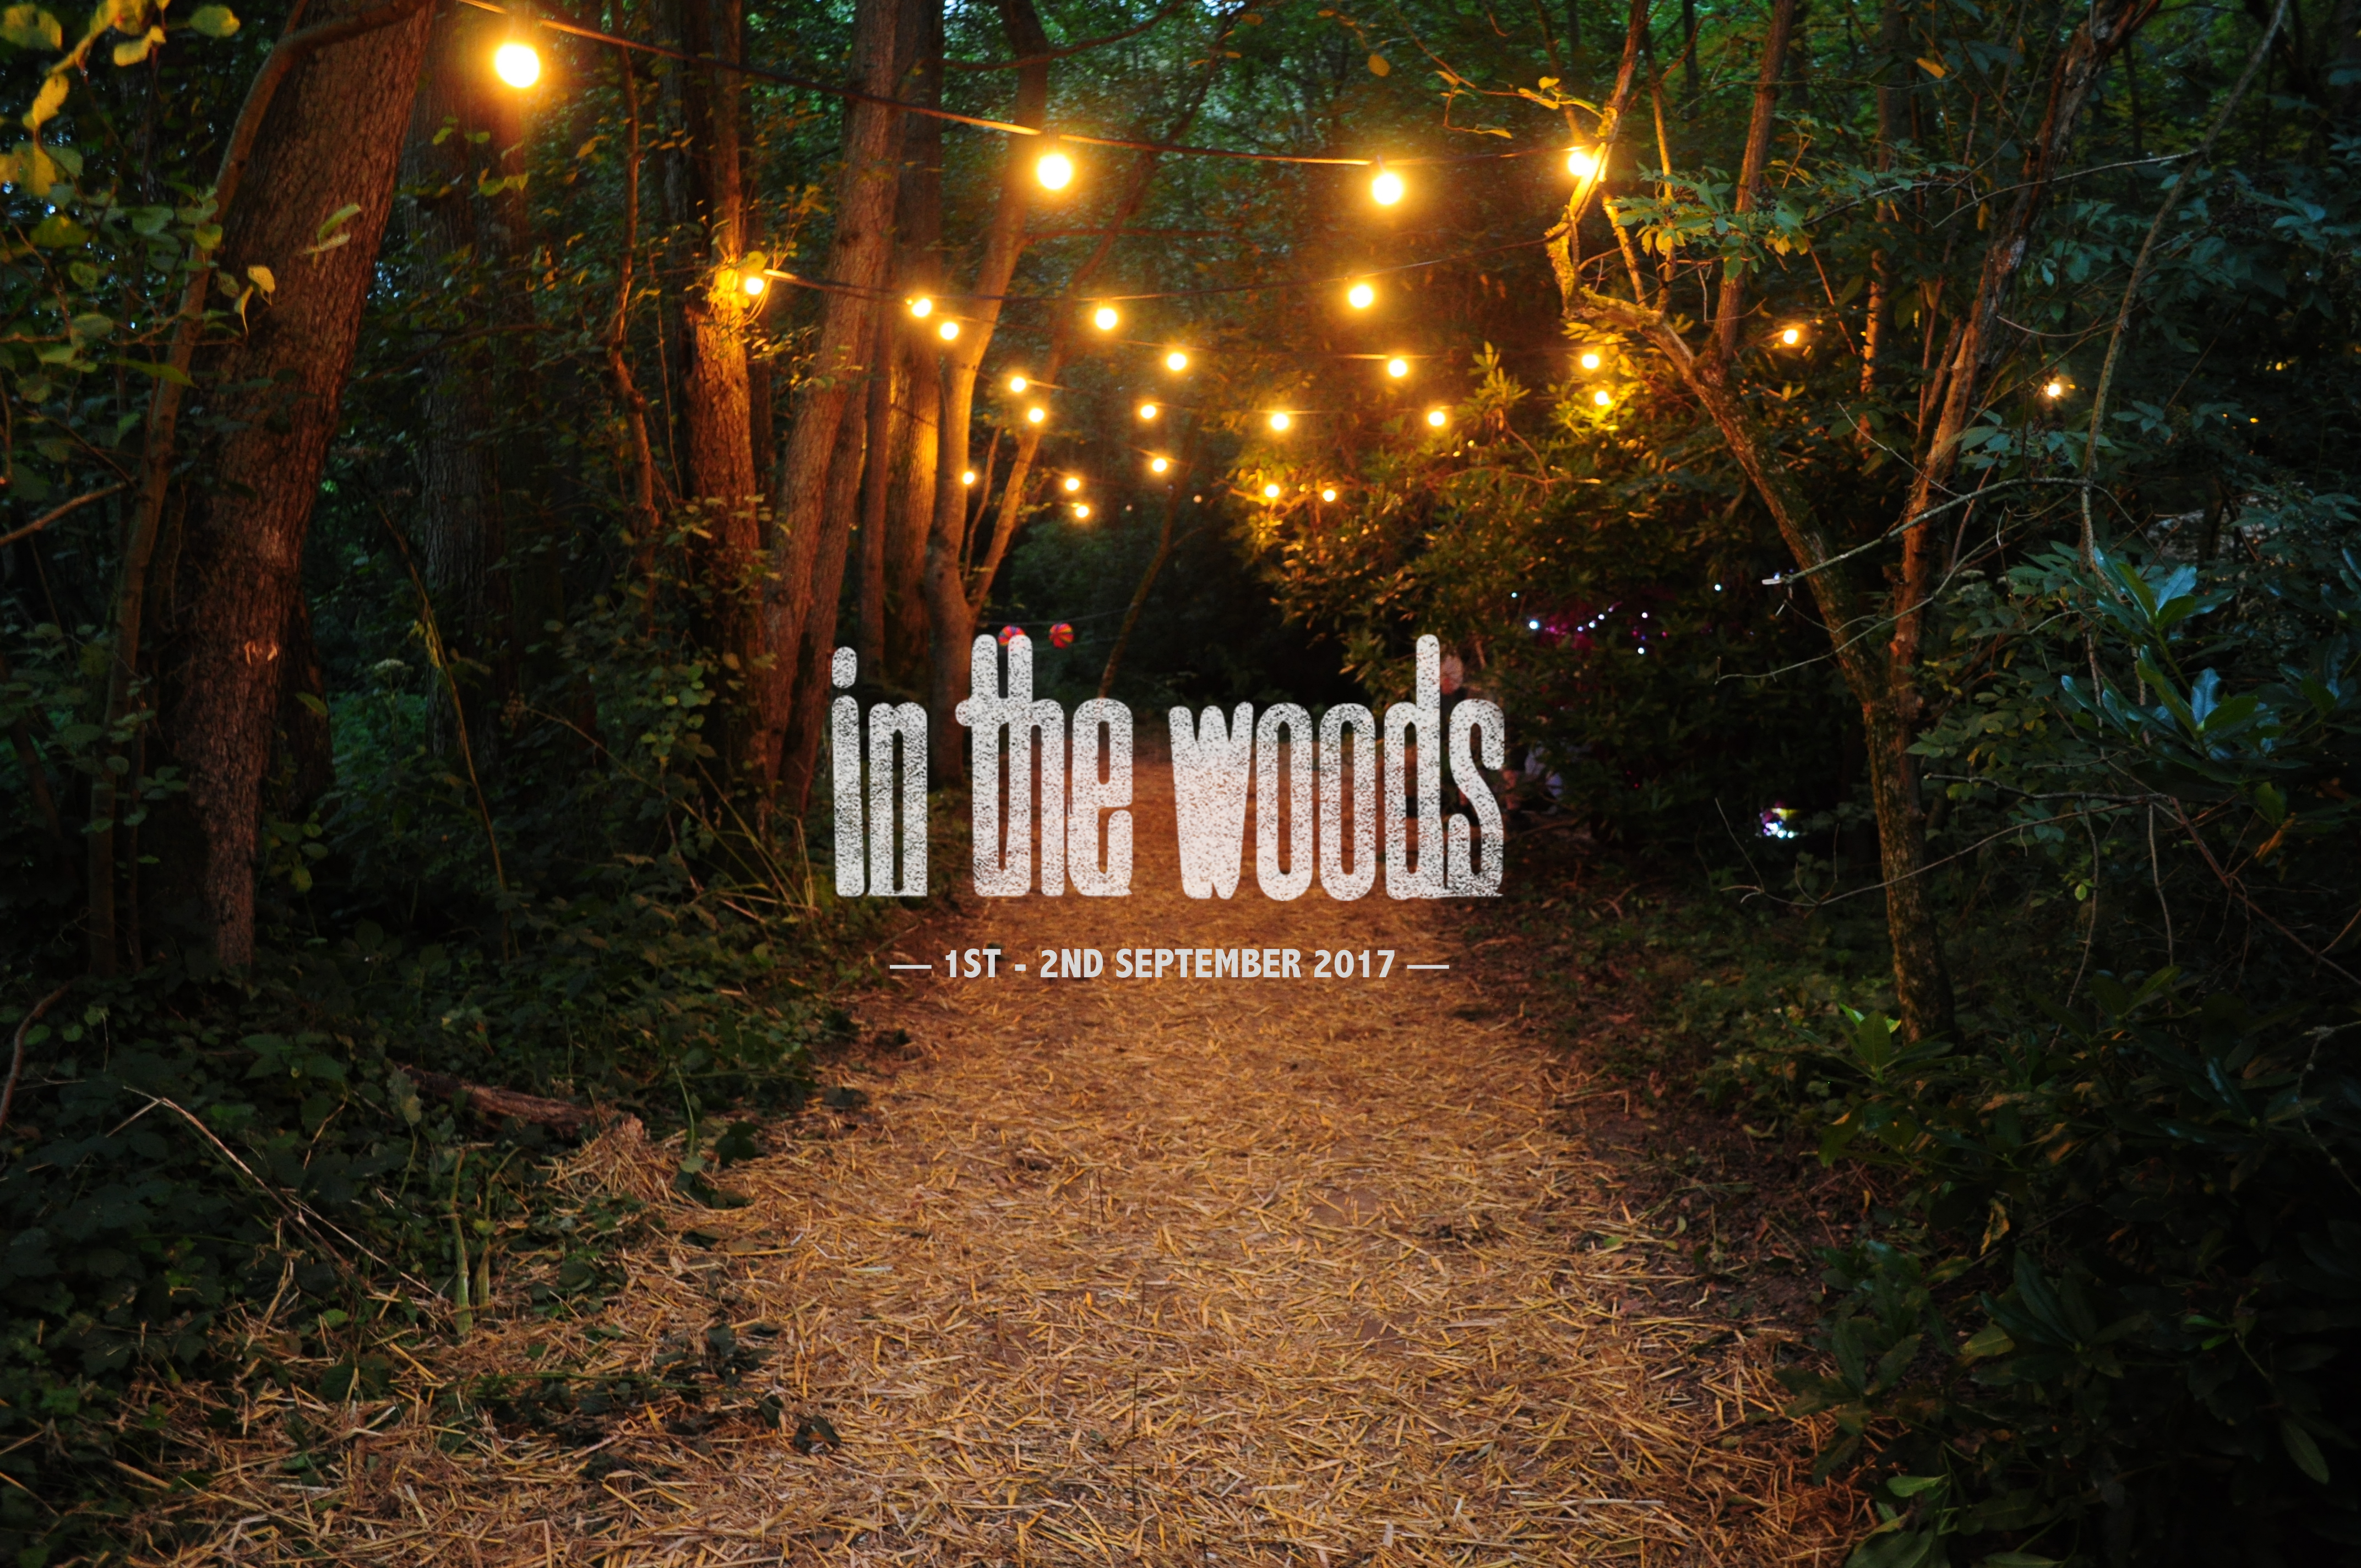 In the woods photo